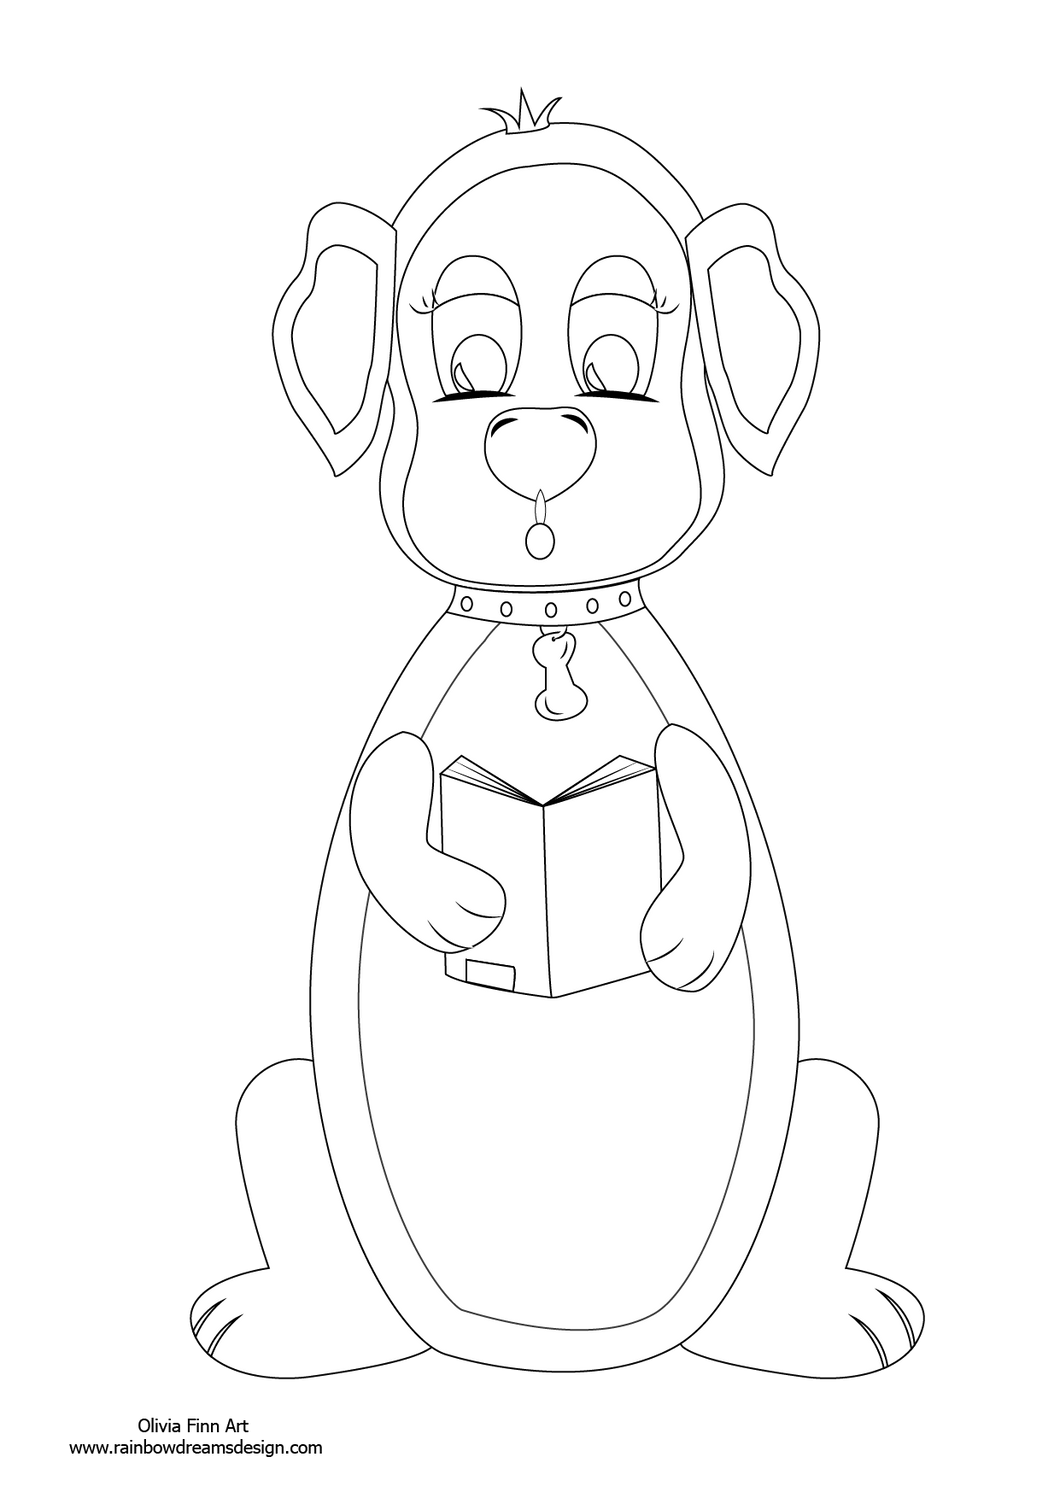 Colouring Page - Dog Reading